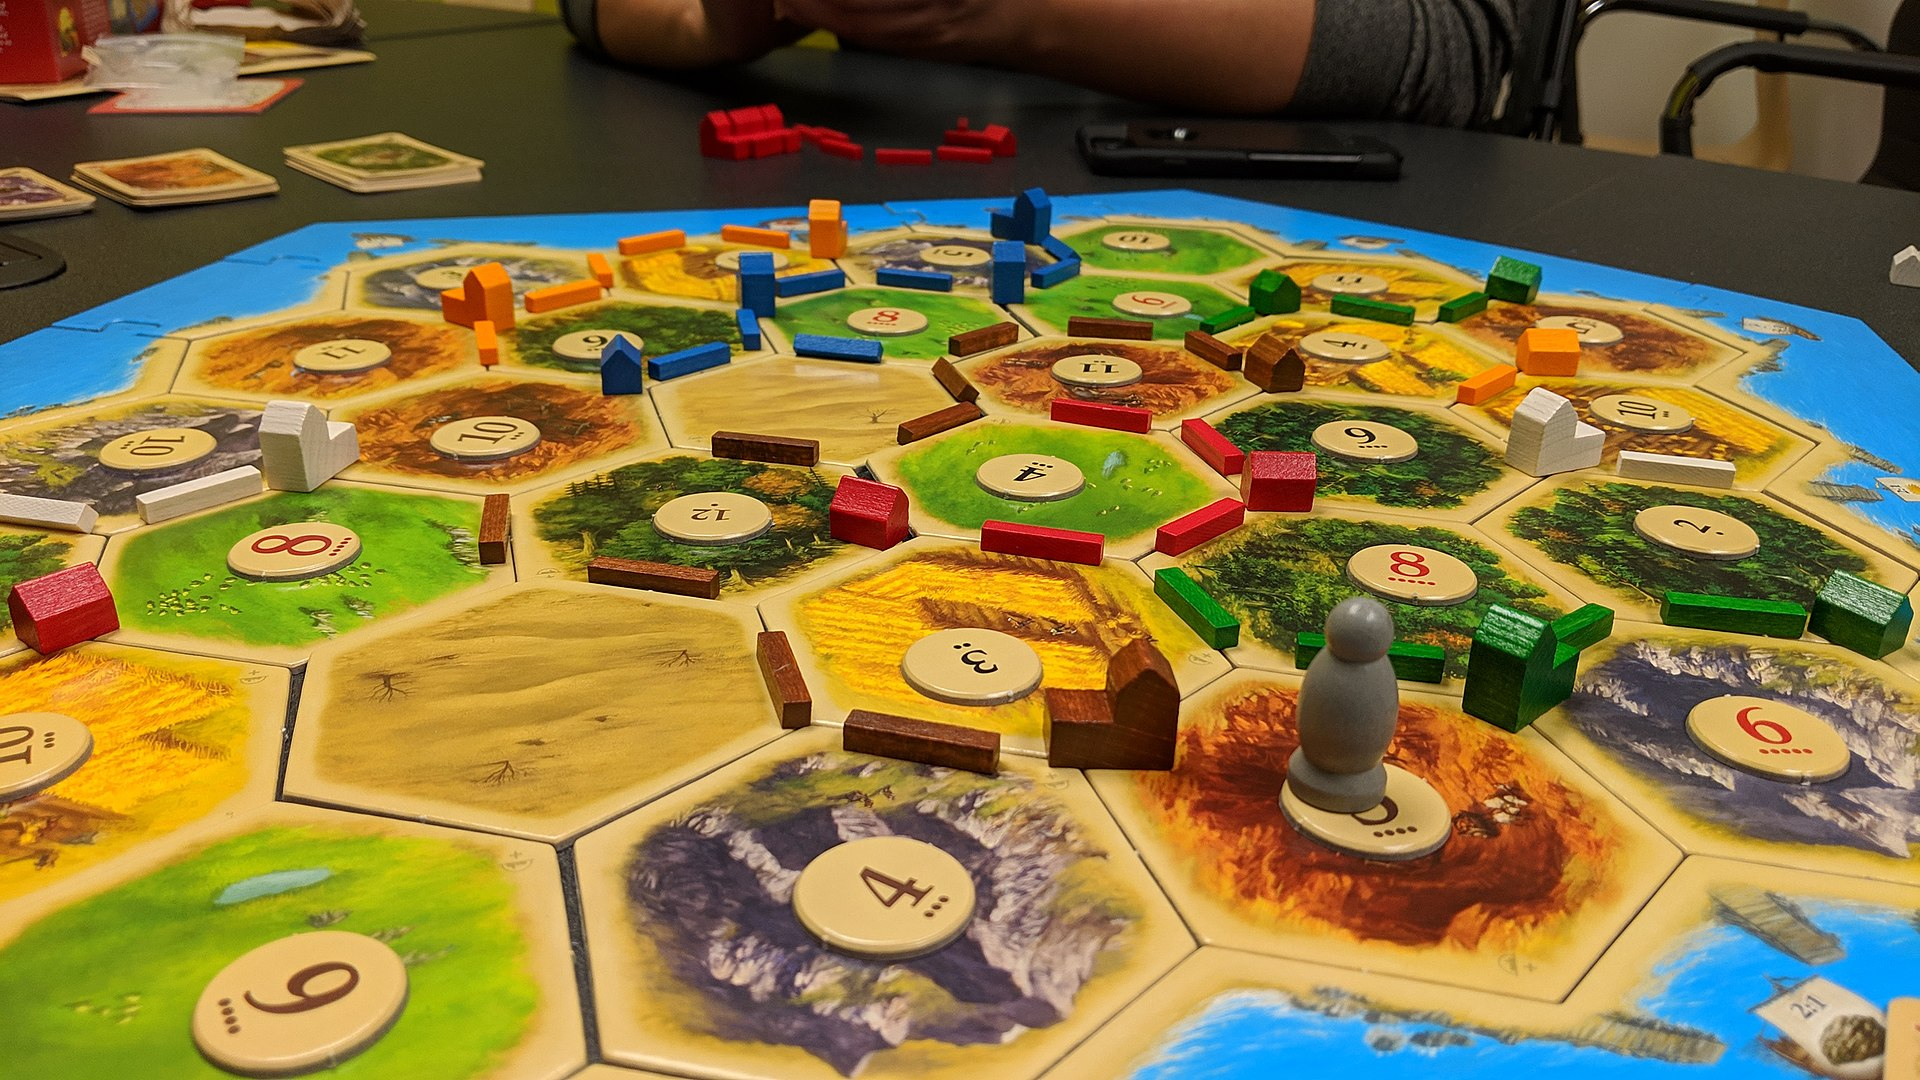 Image of the gameboard of Settlers of Catan in the middle of a game